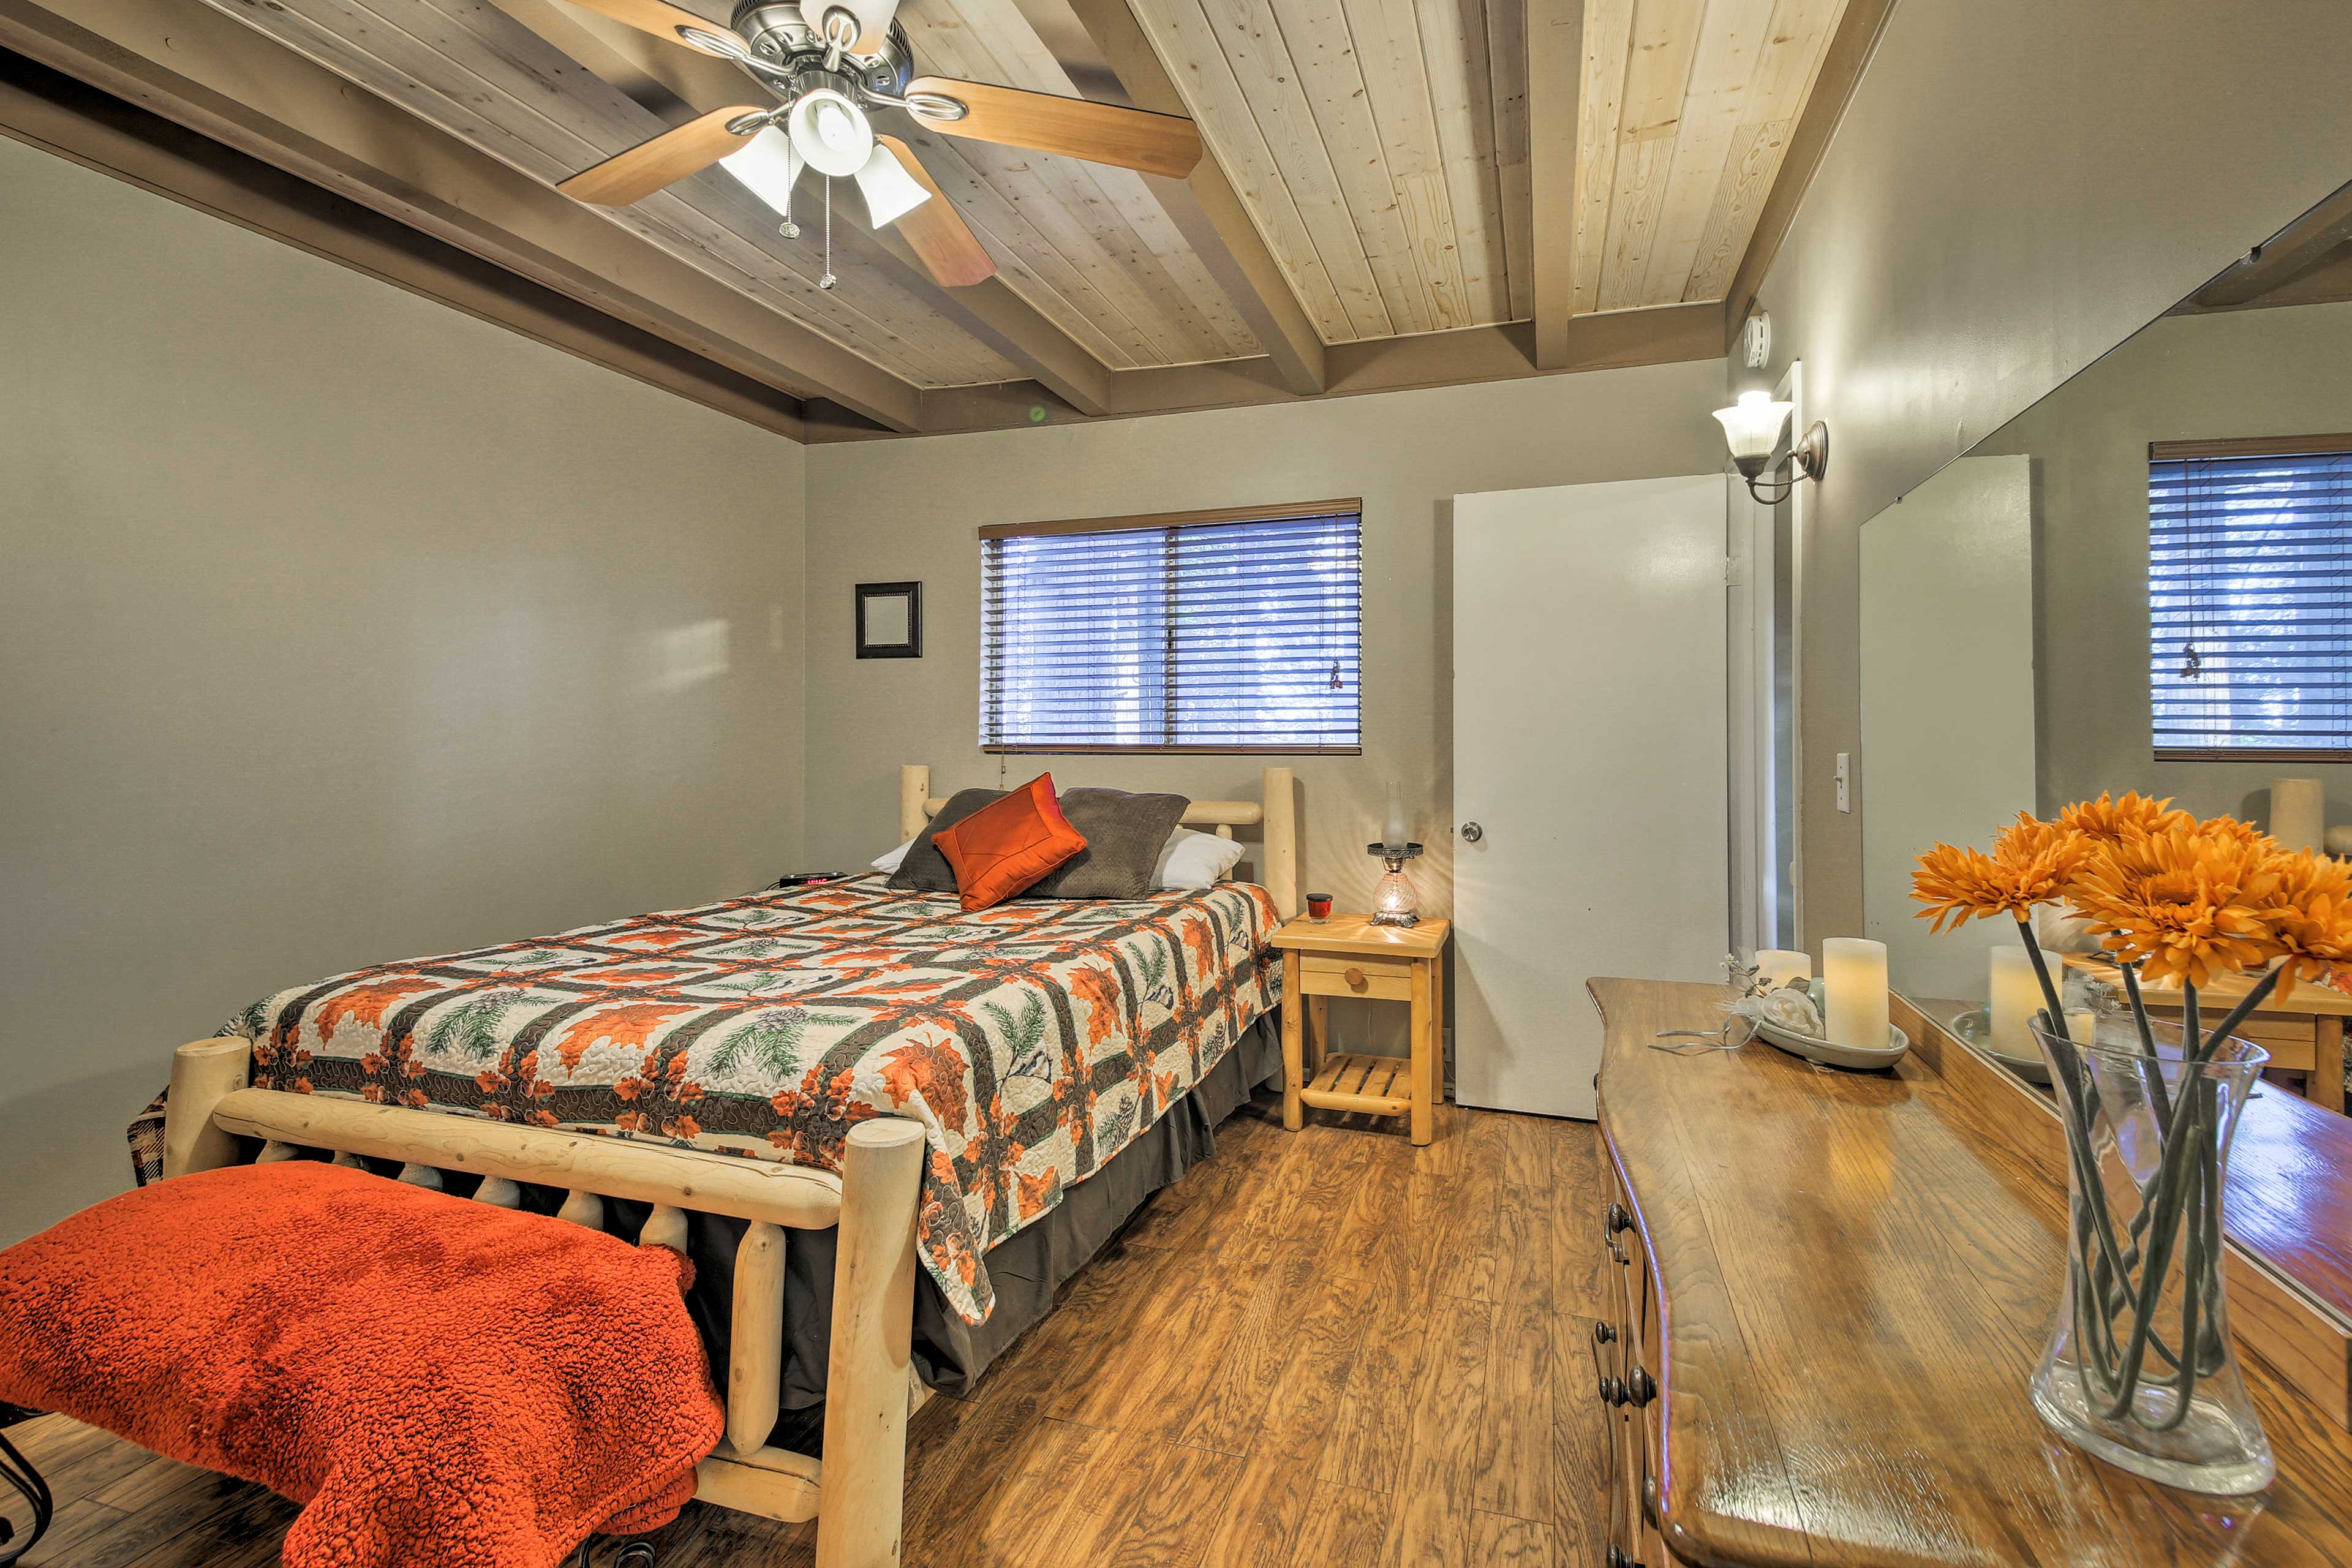 Another queen bed highlights this well-appointed bedroom.